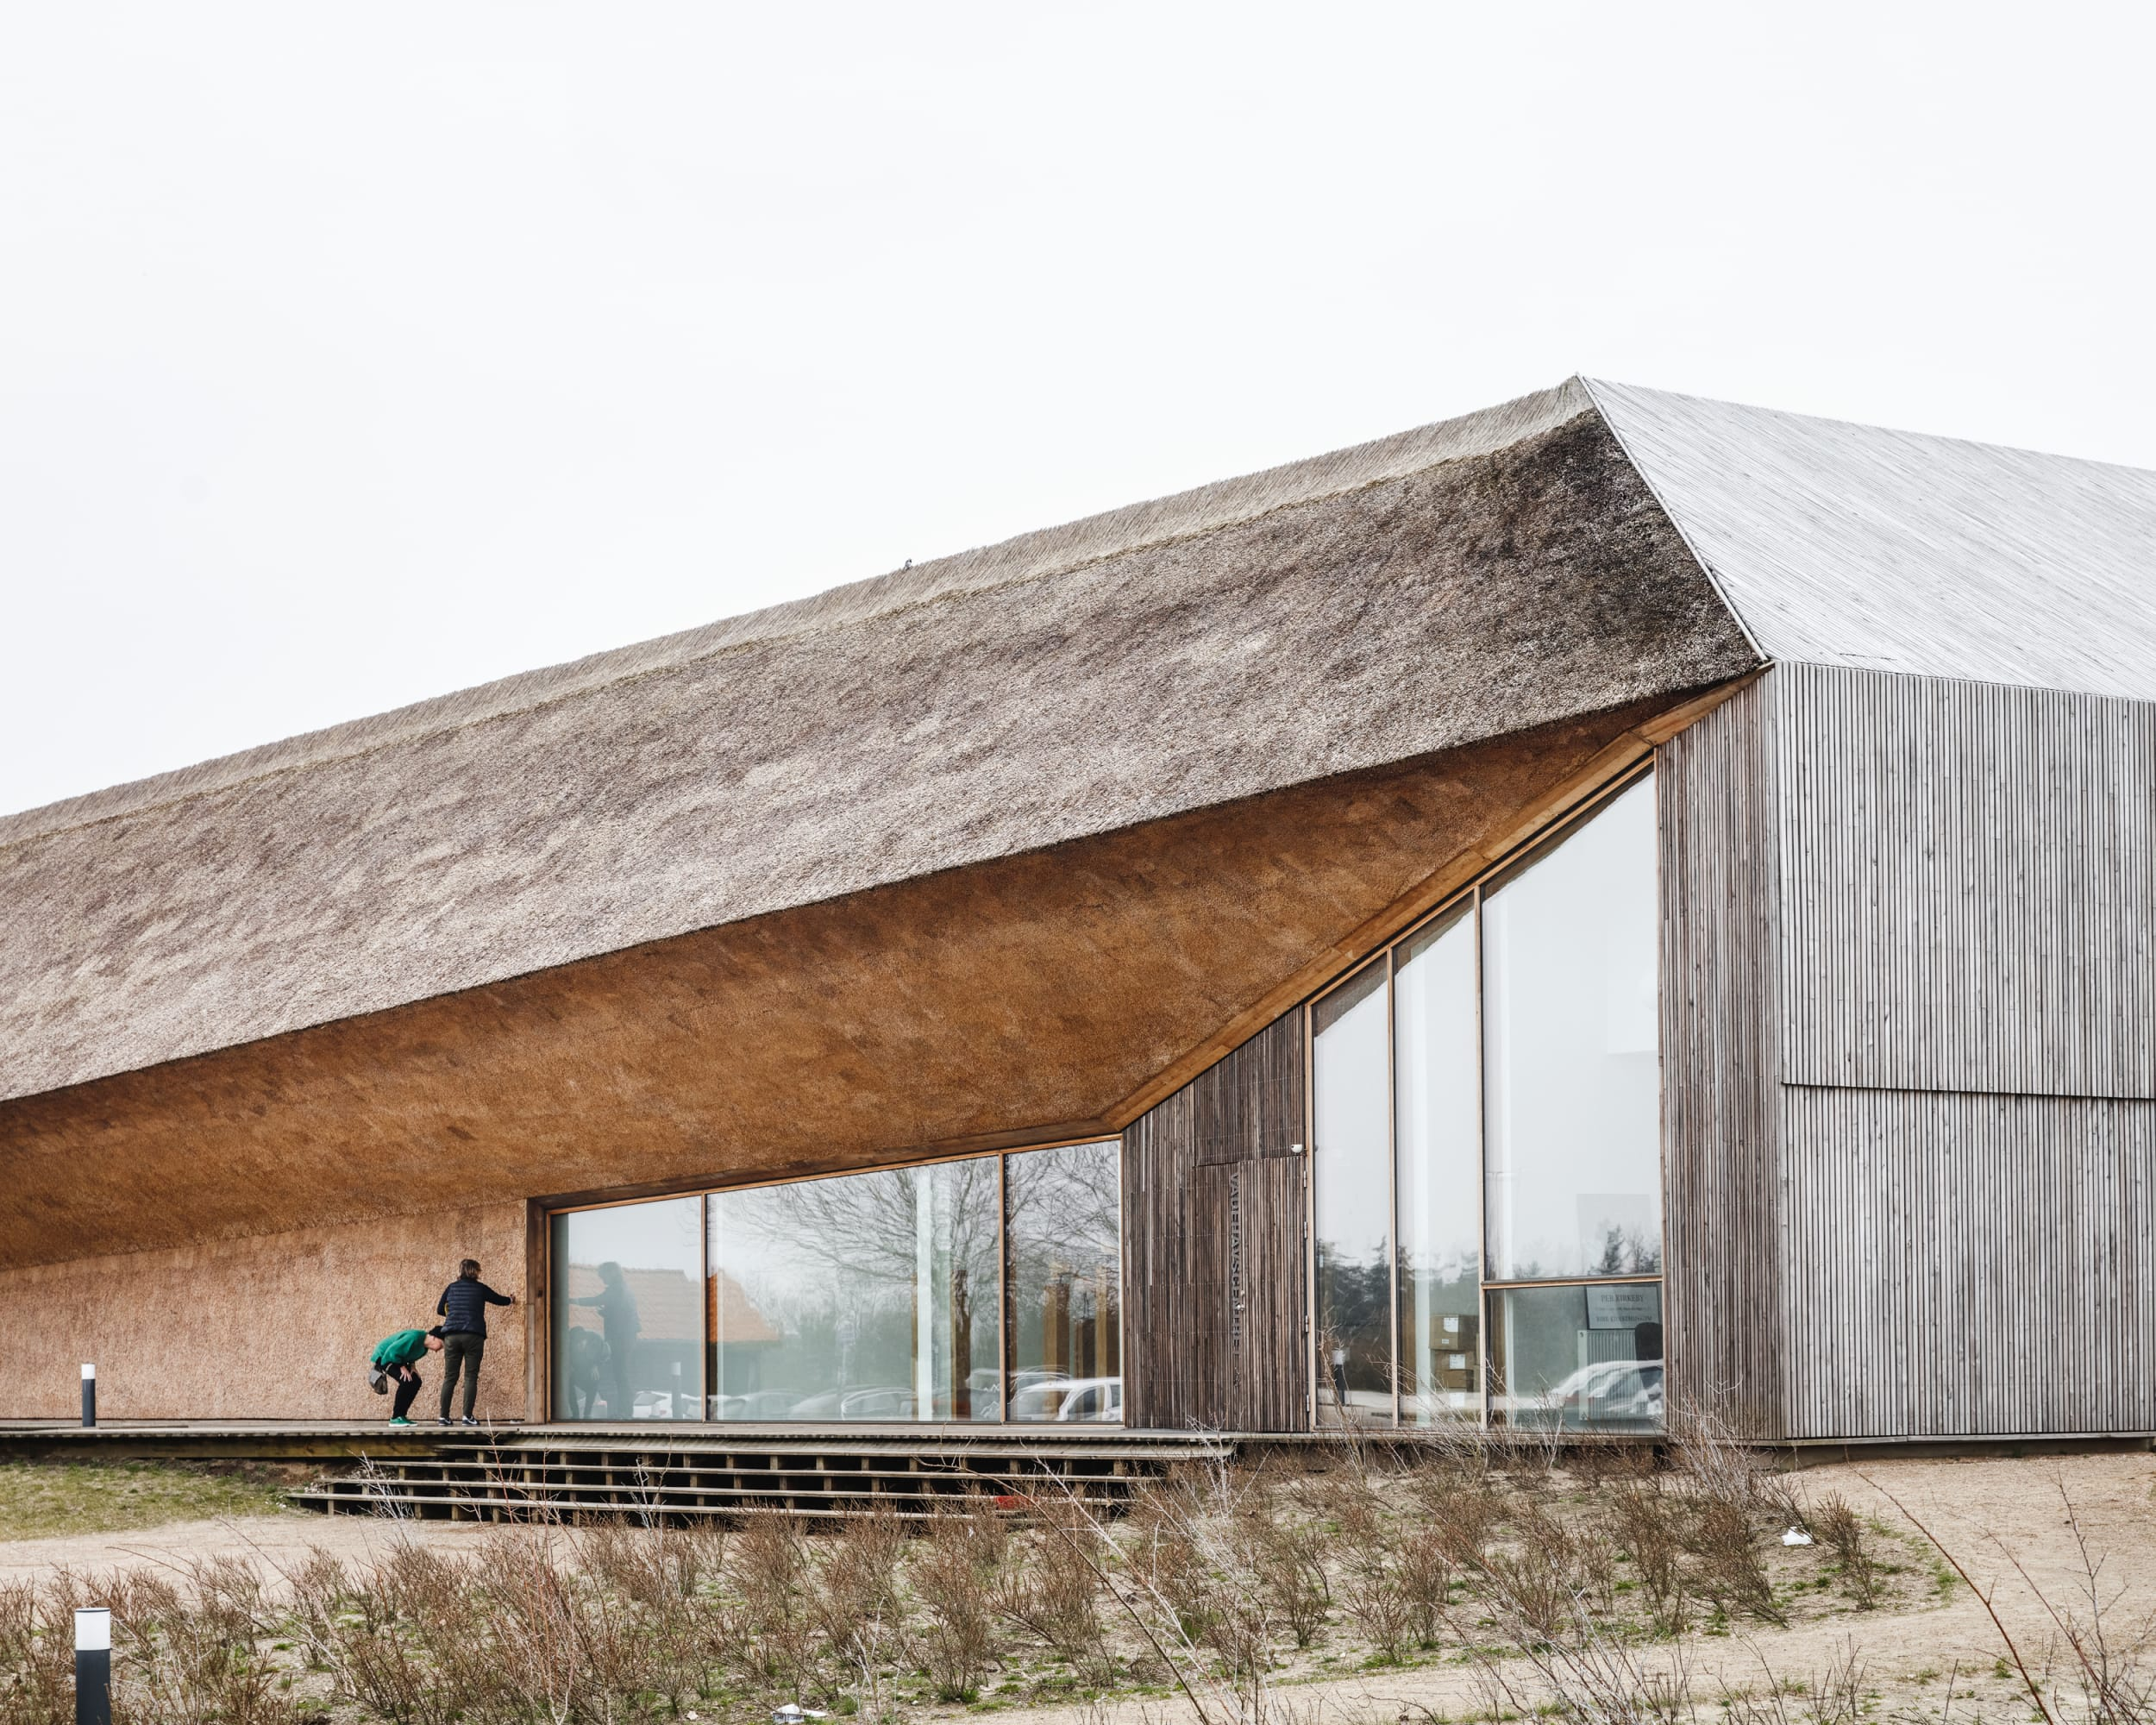 The Wadden Sea Centre in Denmark